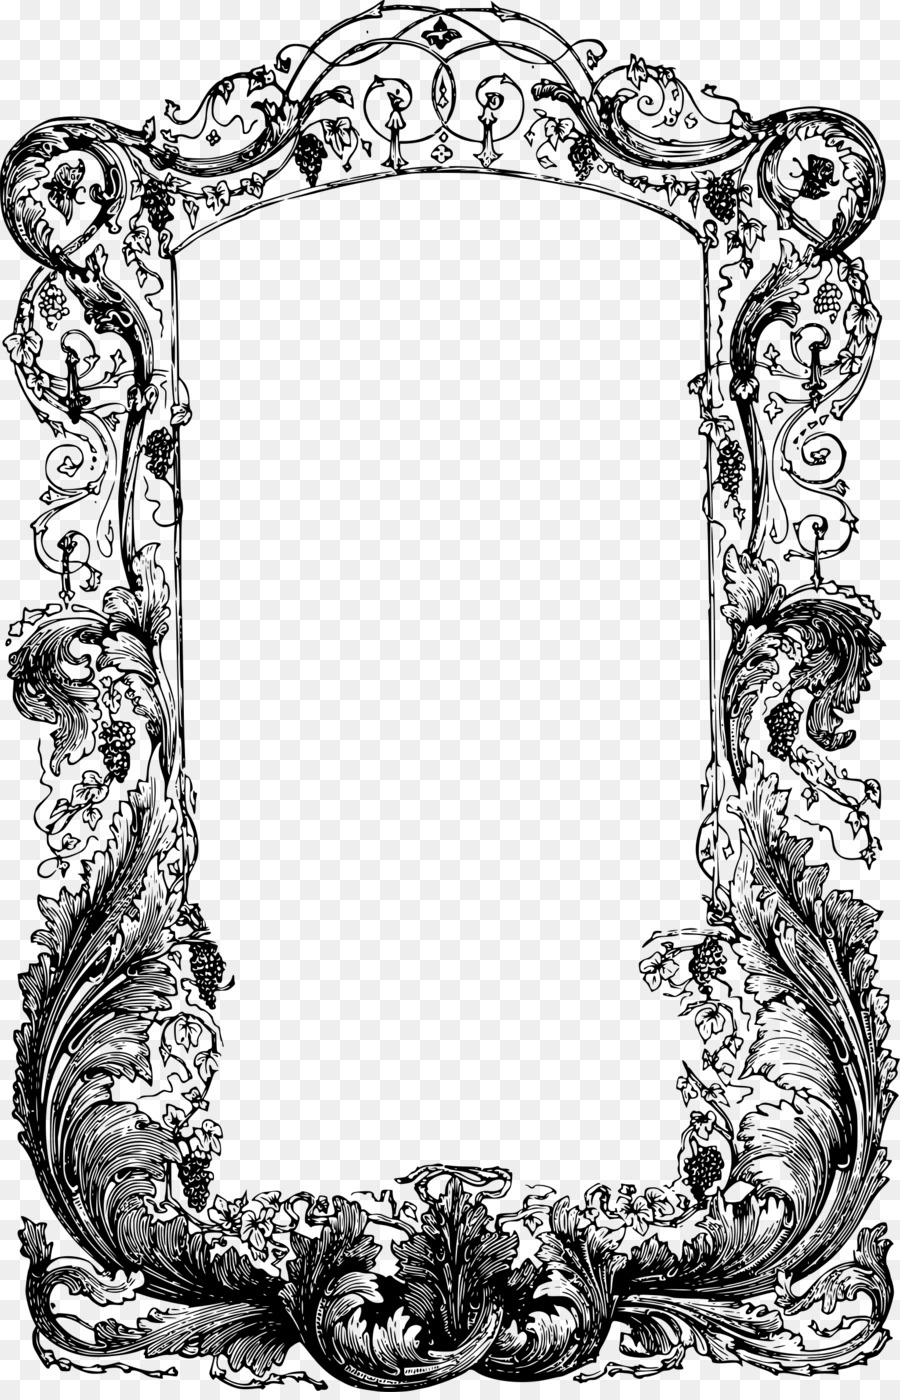 Picture Frames Window Clip art - window png download - 1552*2400 ...